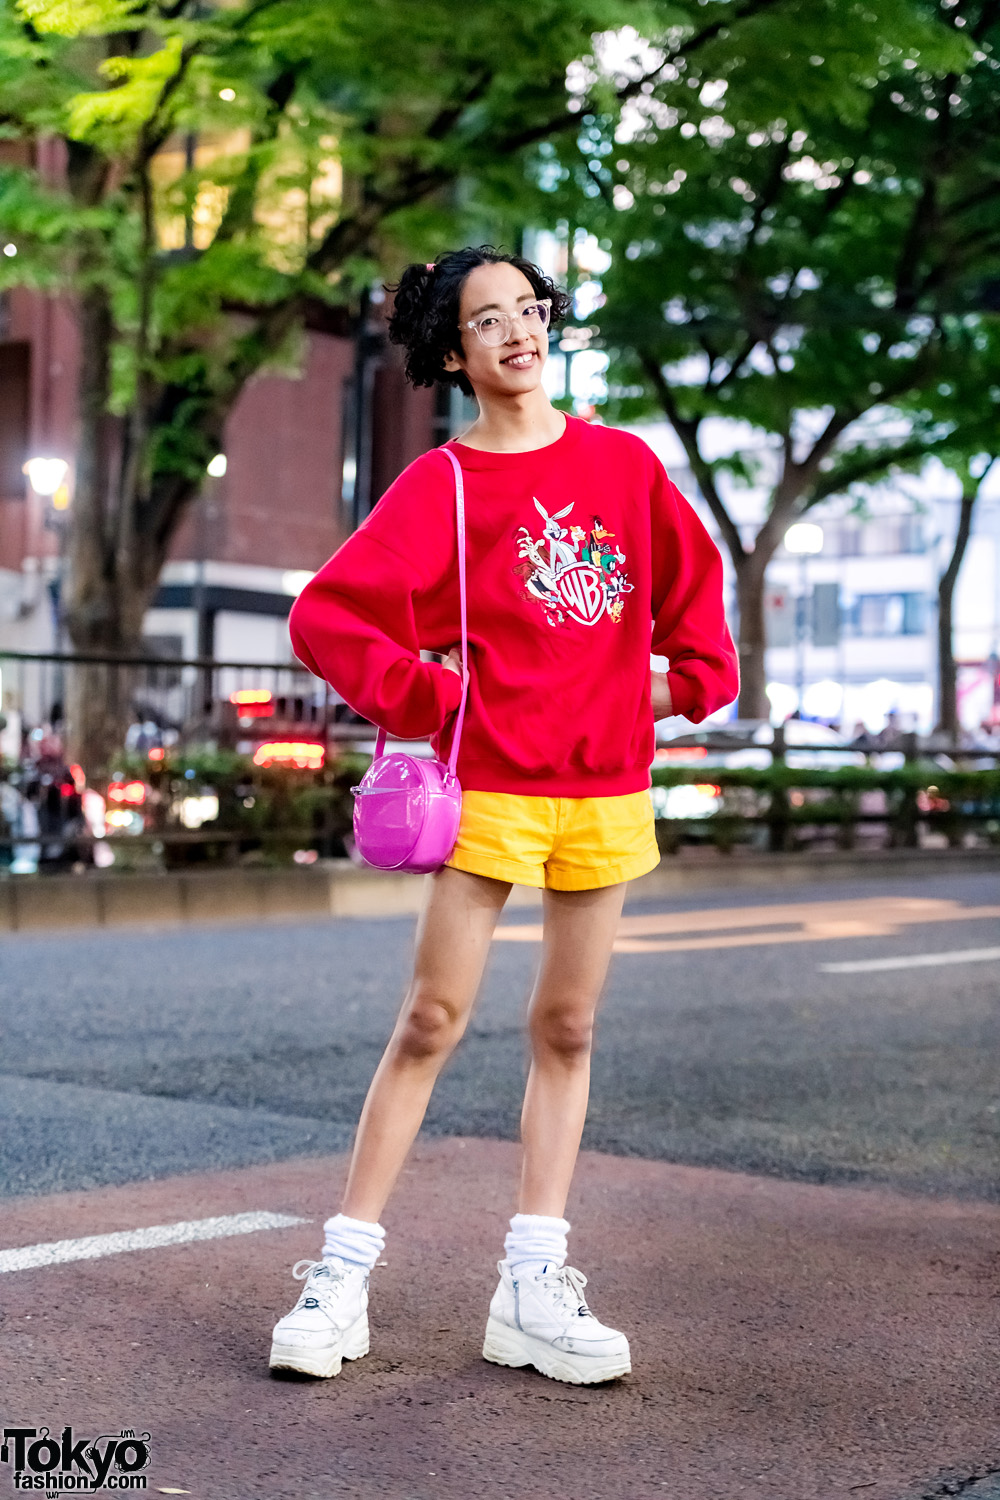 colorful 1980s inspired streetwear w looney tunes peco club wc